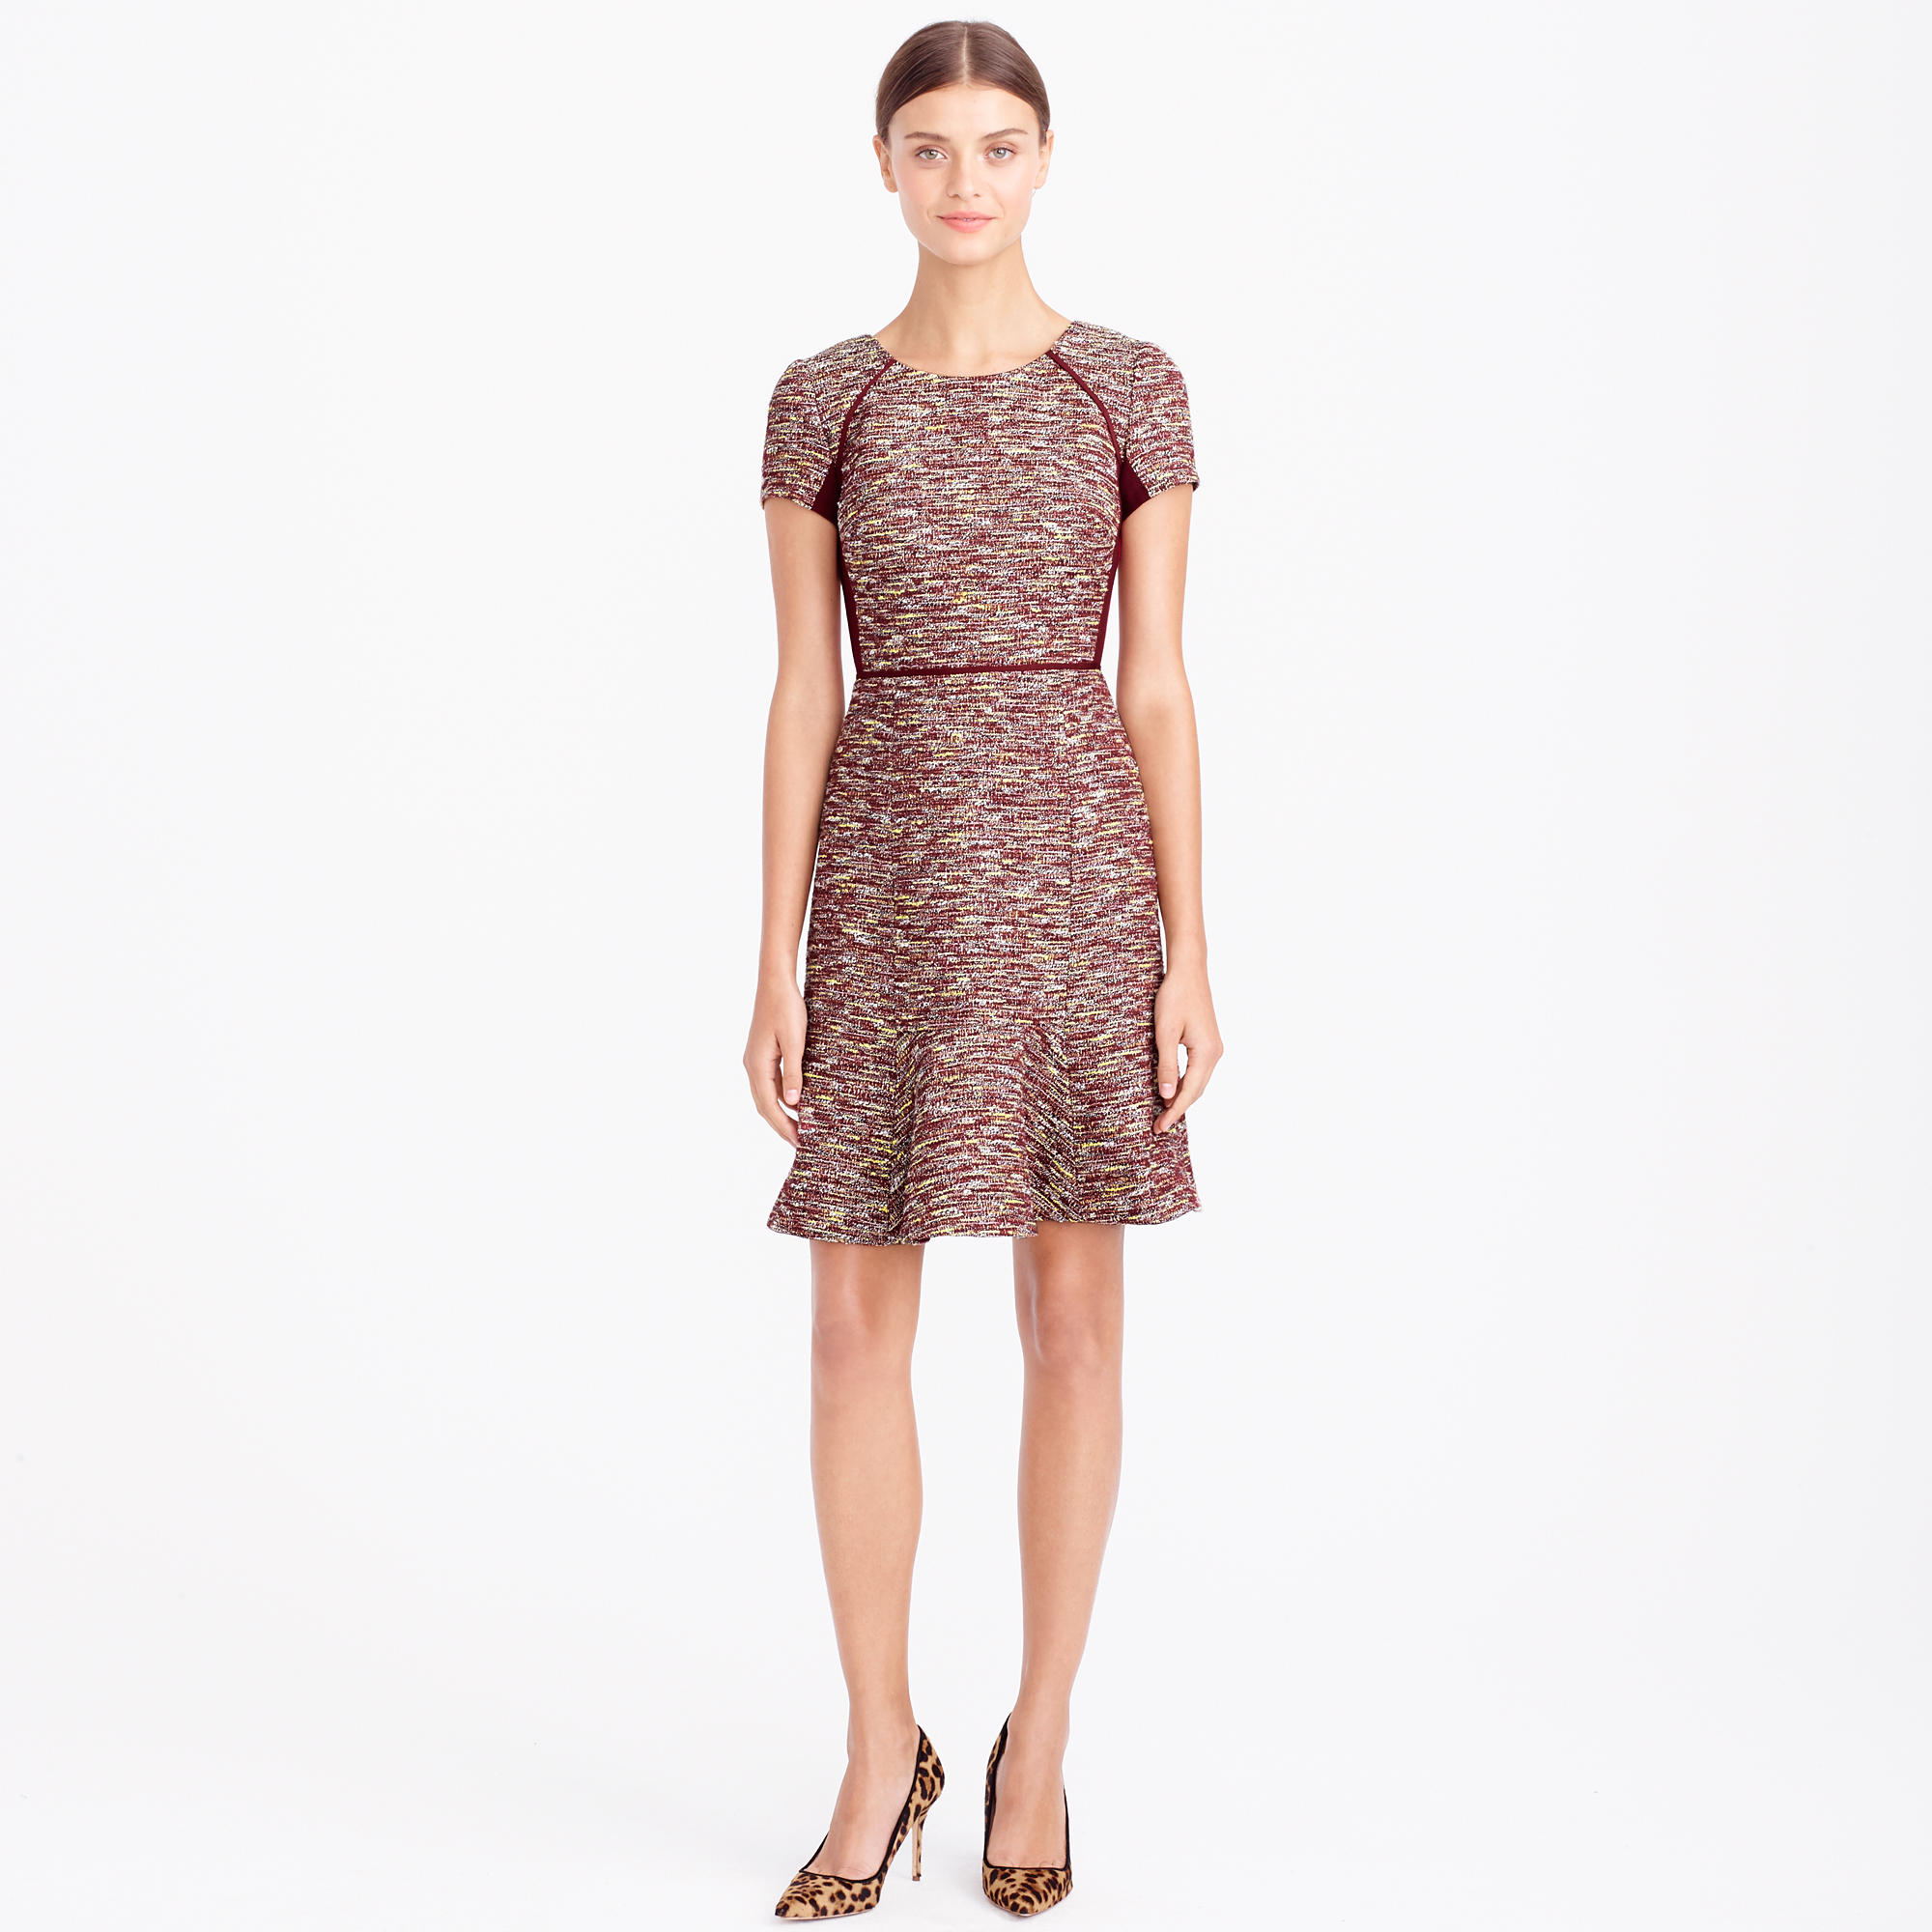 J Crew Mixed Tweed Dress In Metallic In Garnet Red Lyst